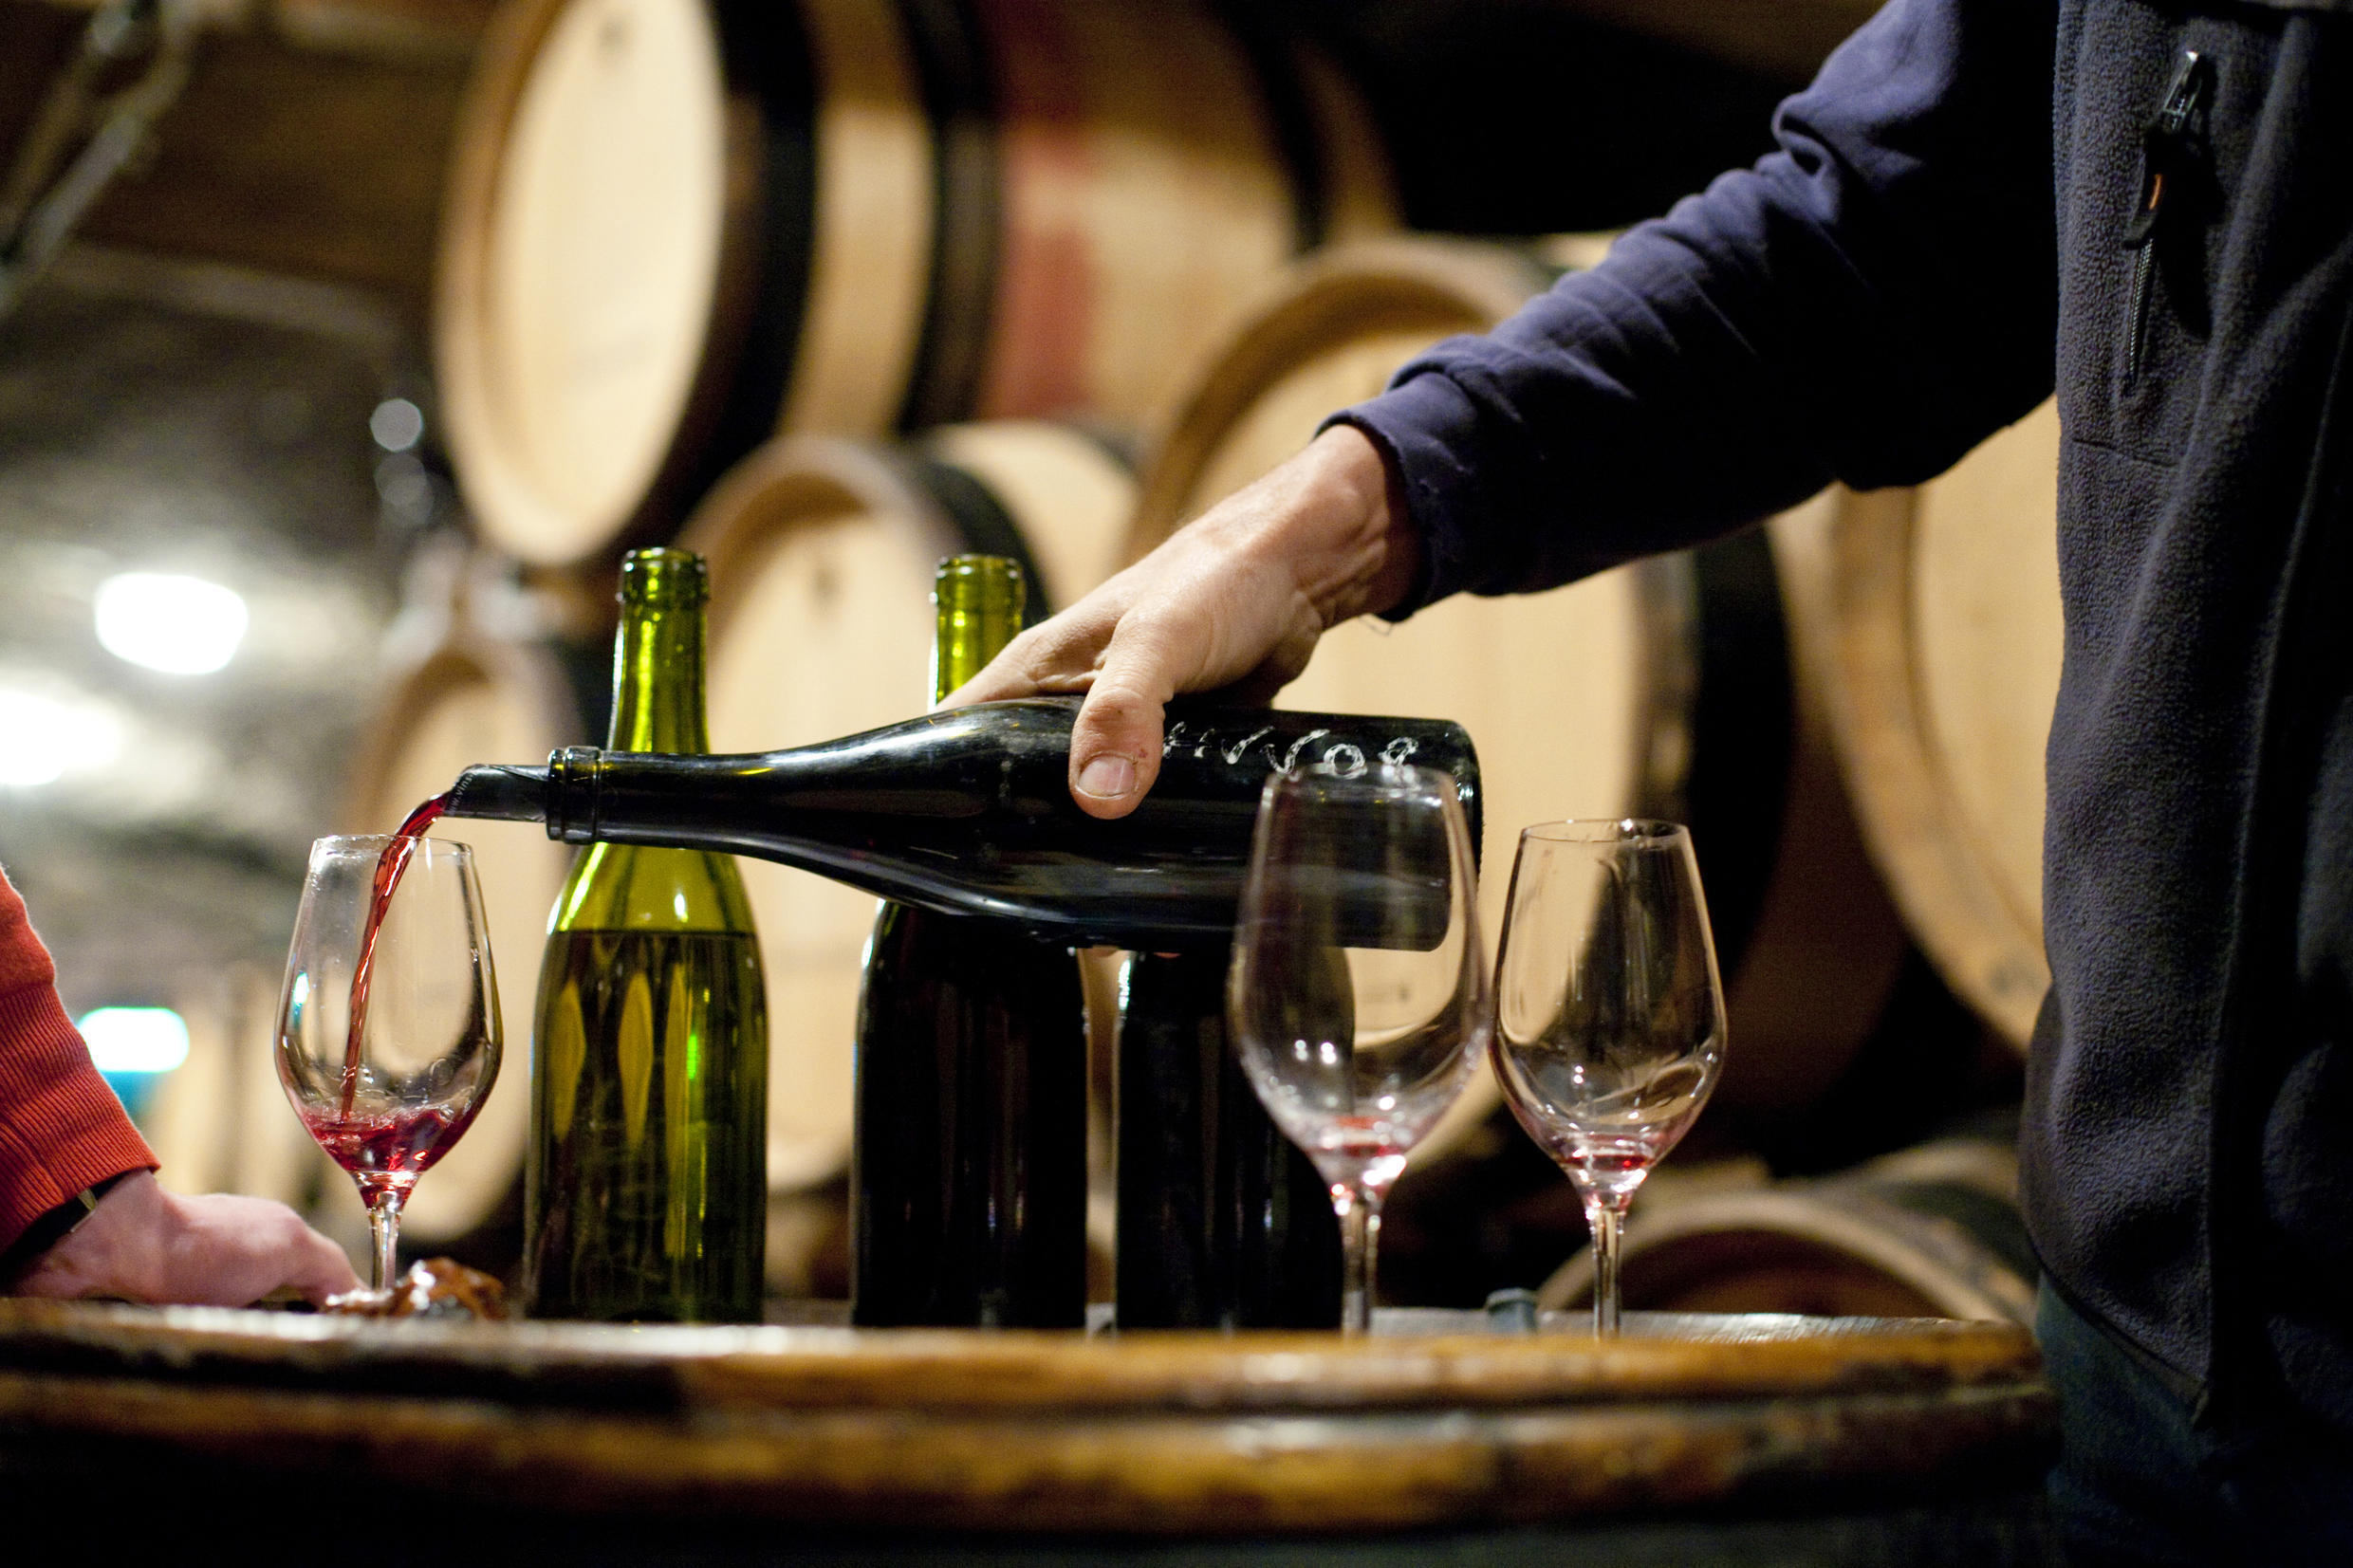 Burgundy wine takes top three places in world rankings of most expensive wine